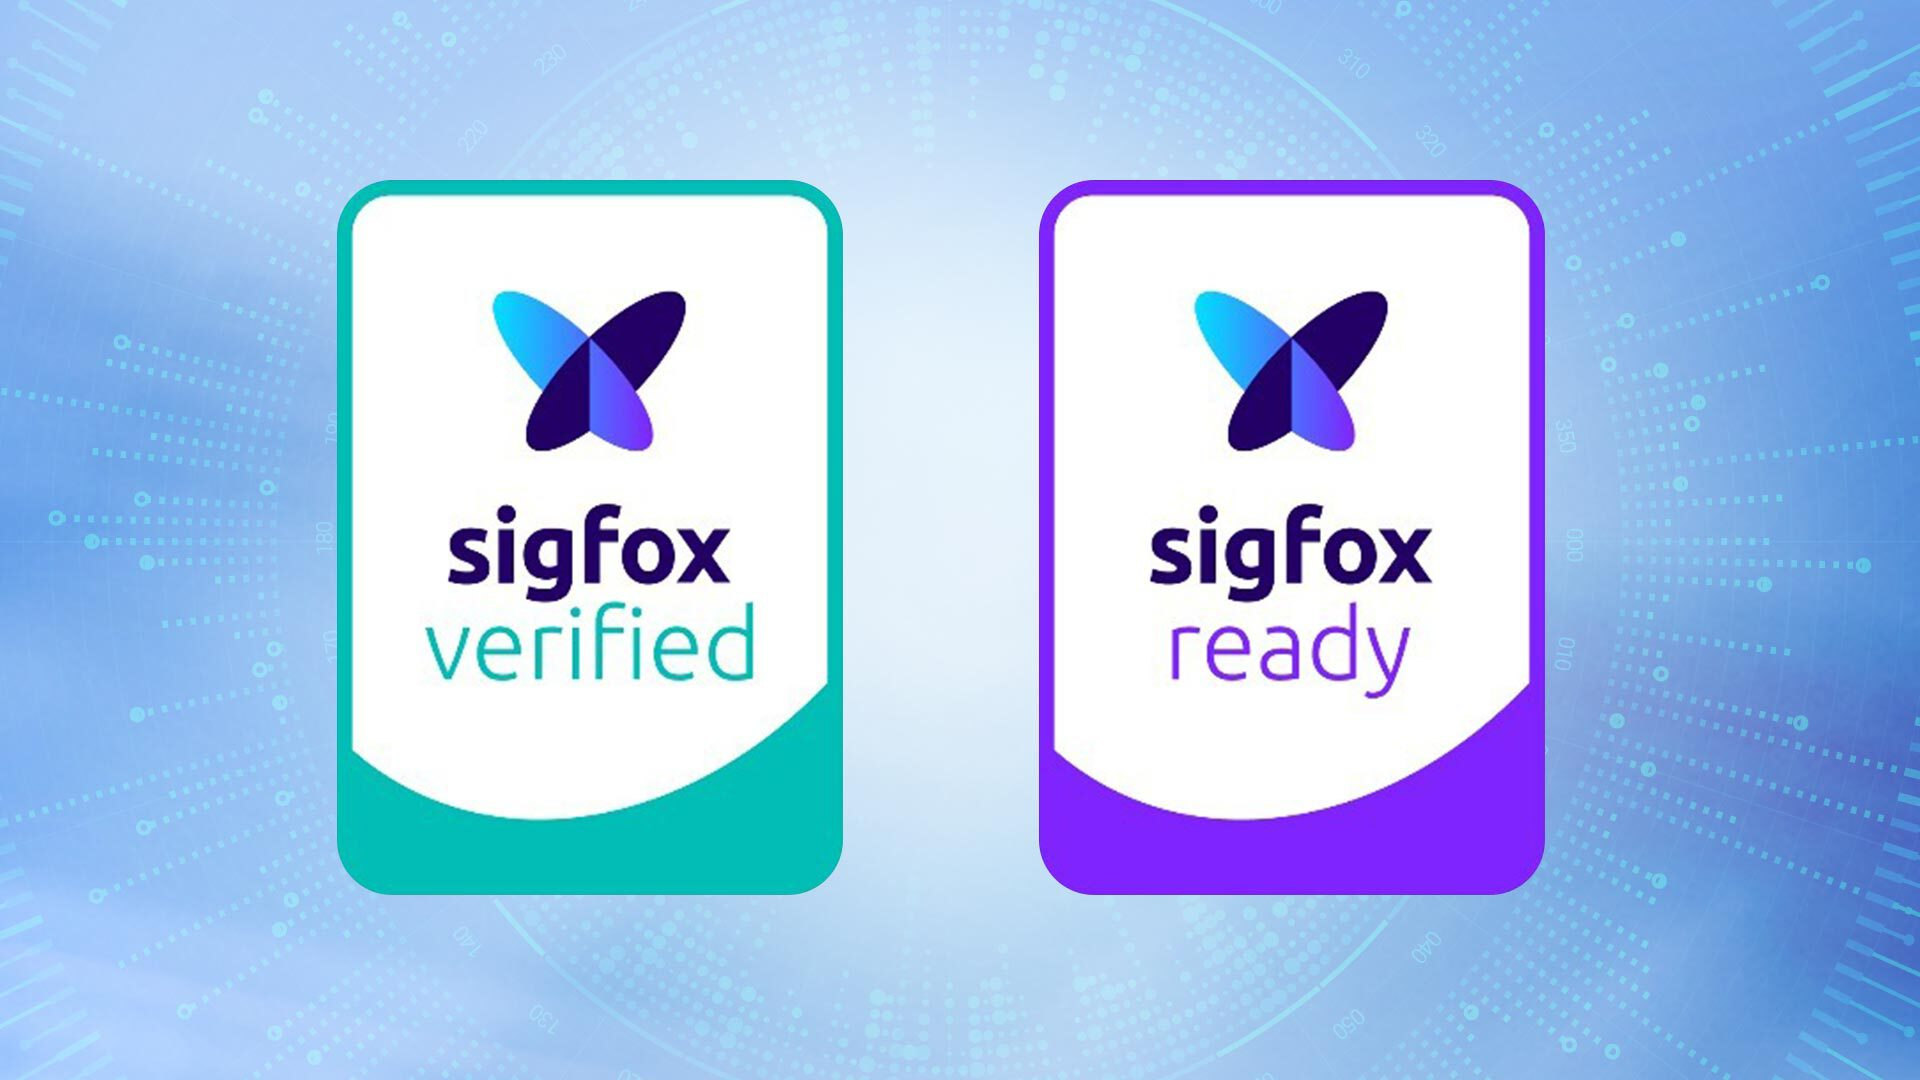 Labels of Sigfox ready and Sigfox verified